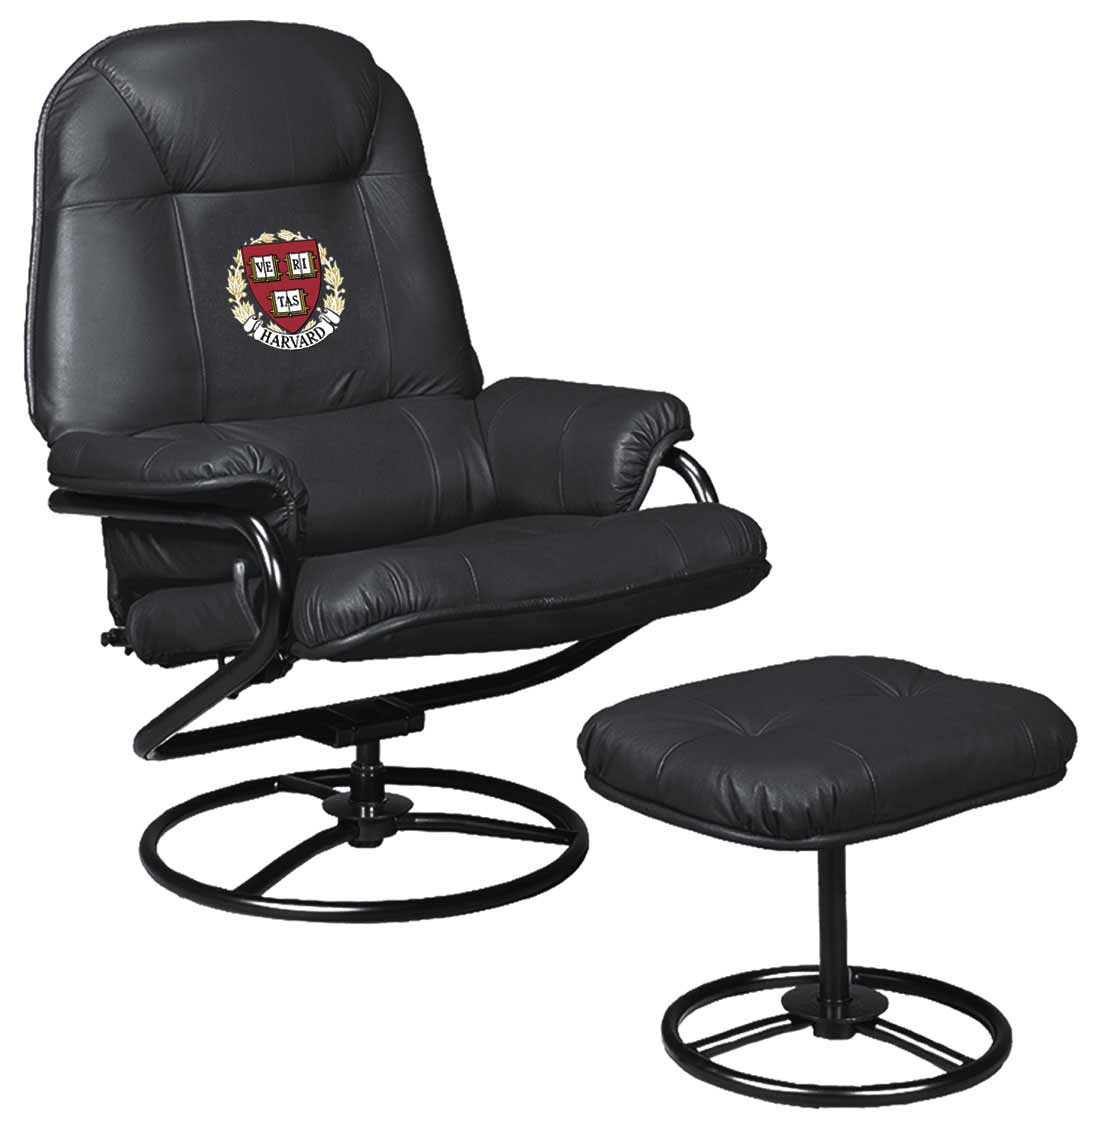 Black Leather Ottoman Chair in Tucson office furniture